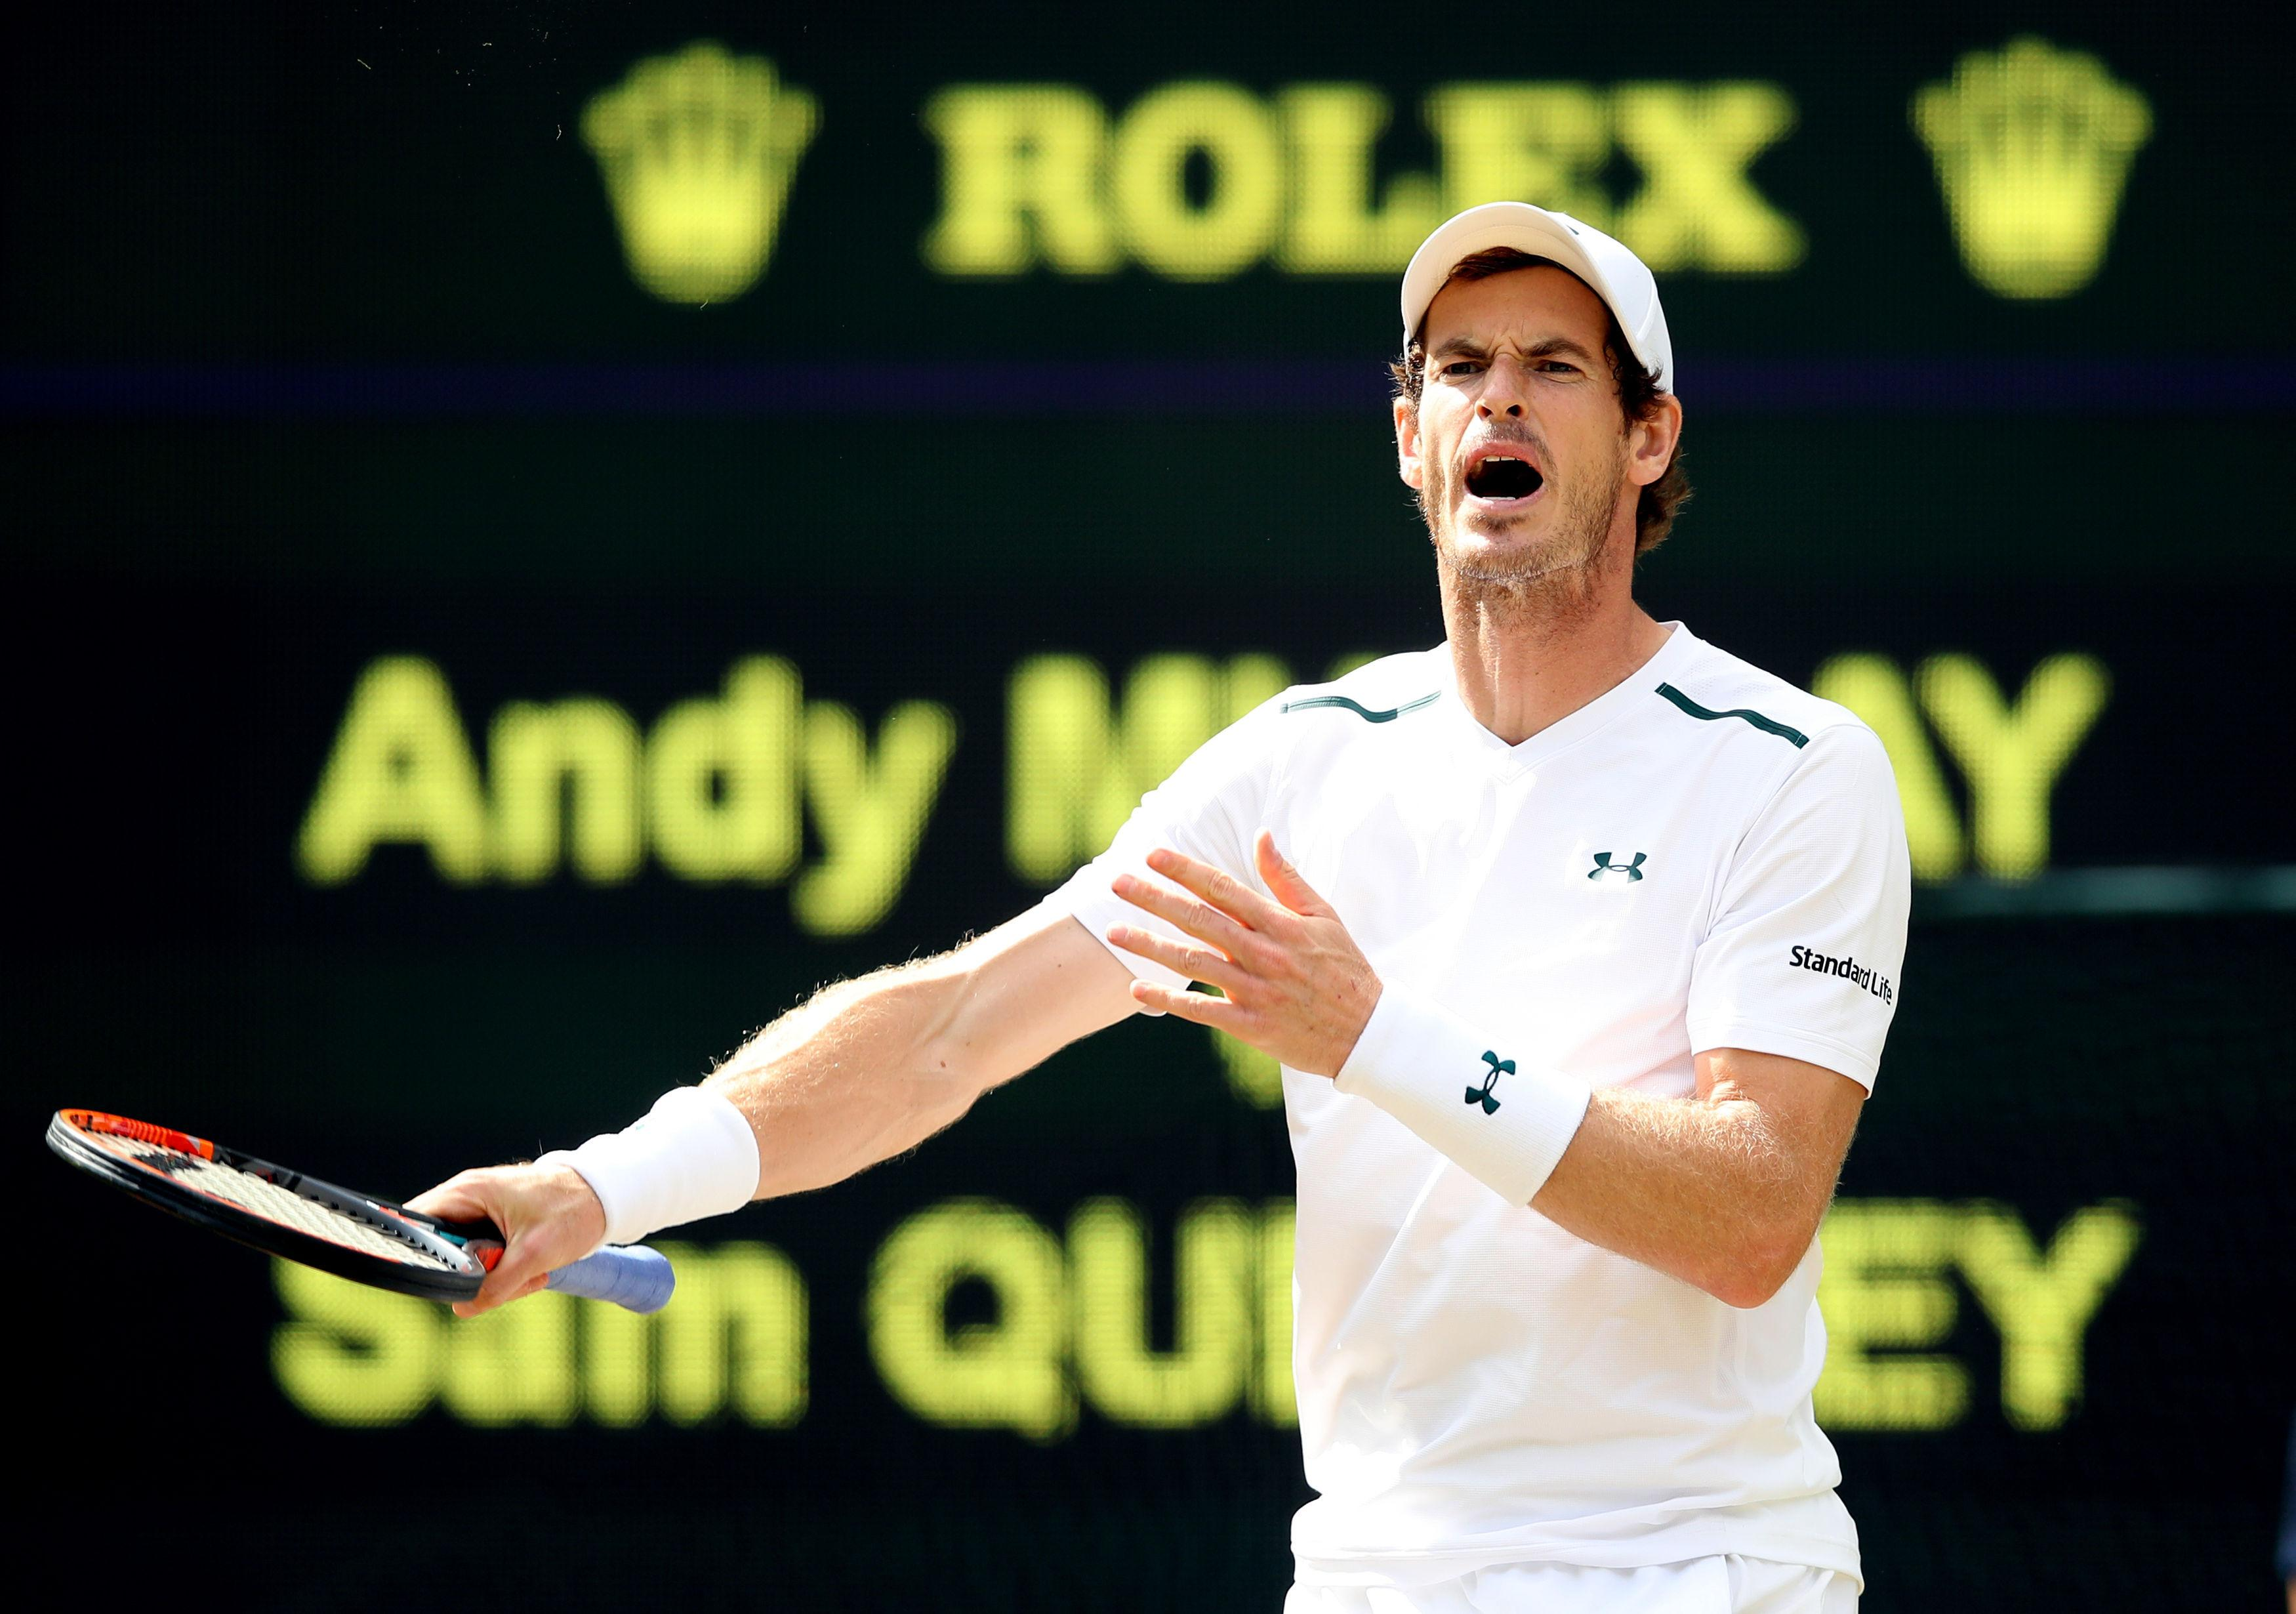 Andy Murray has pulled out of an event in Holland next week with injury - and is now a doubt for Wimbledon